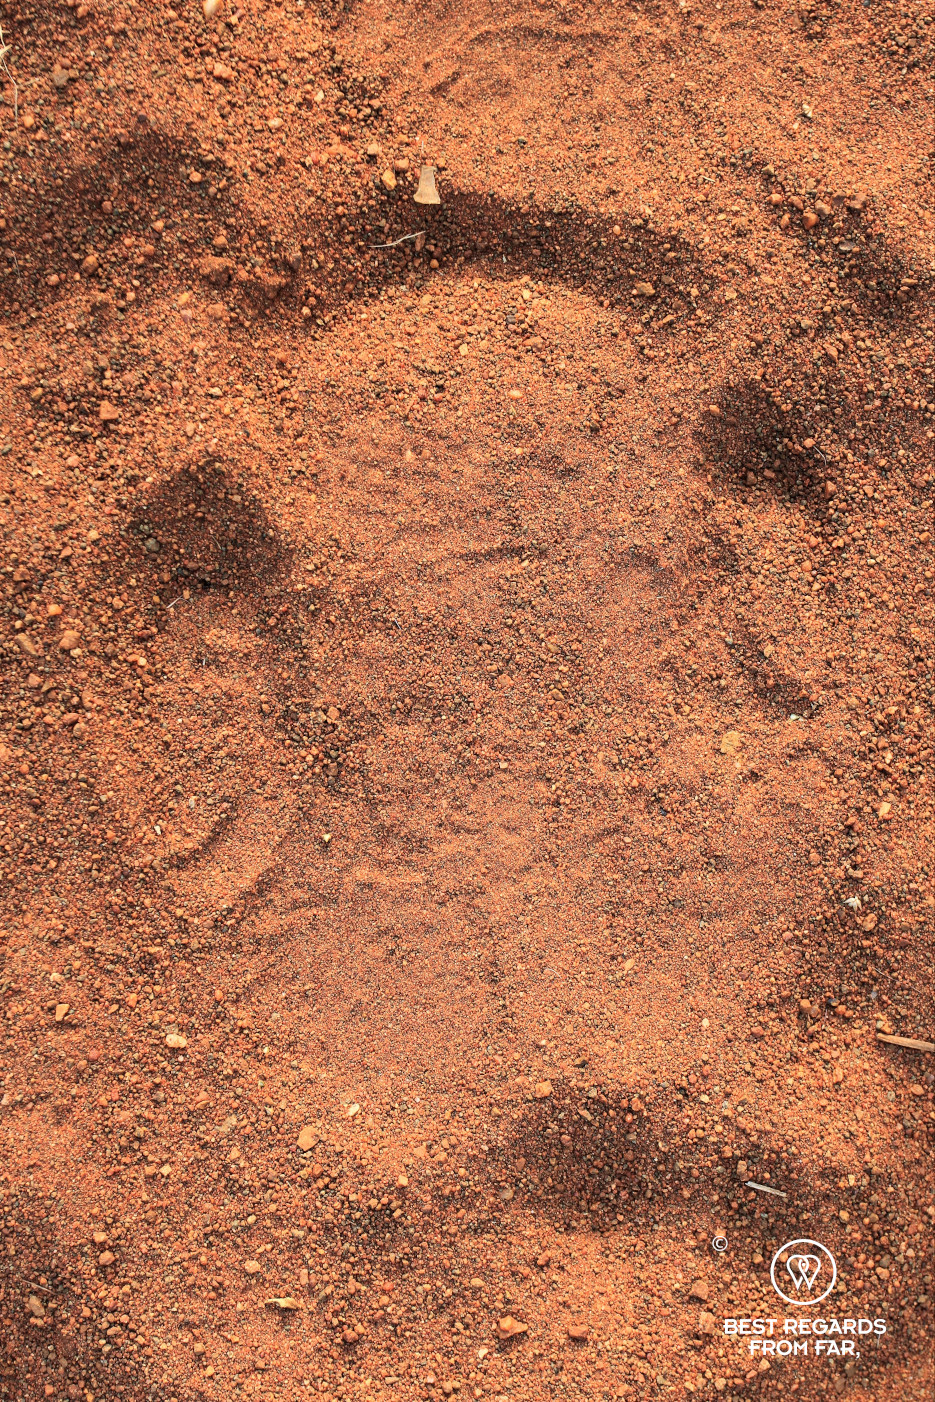 White rhino track in the red sand